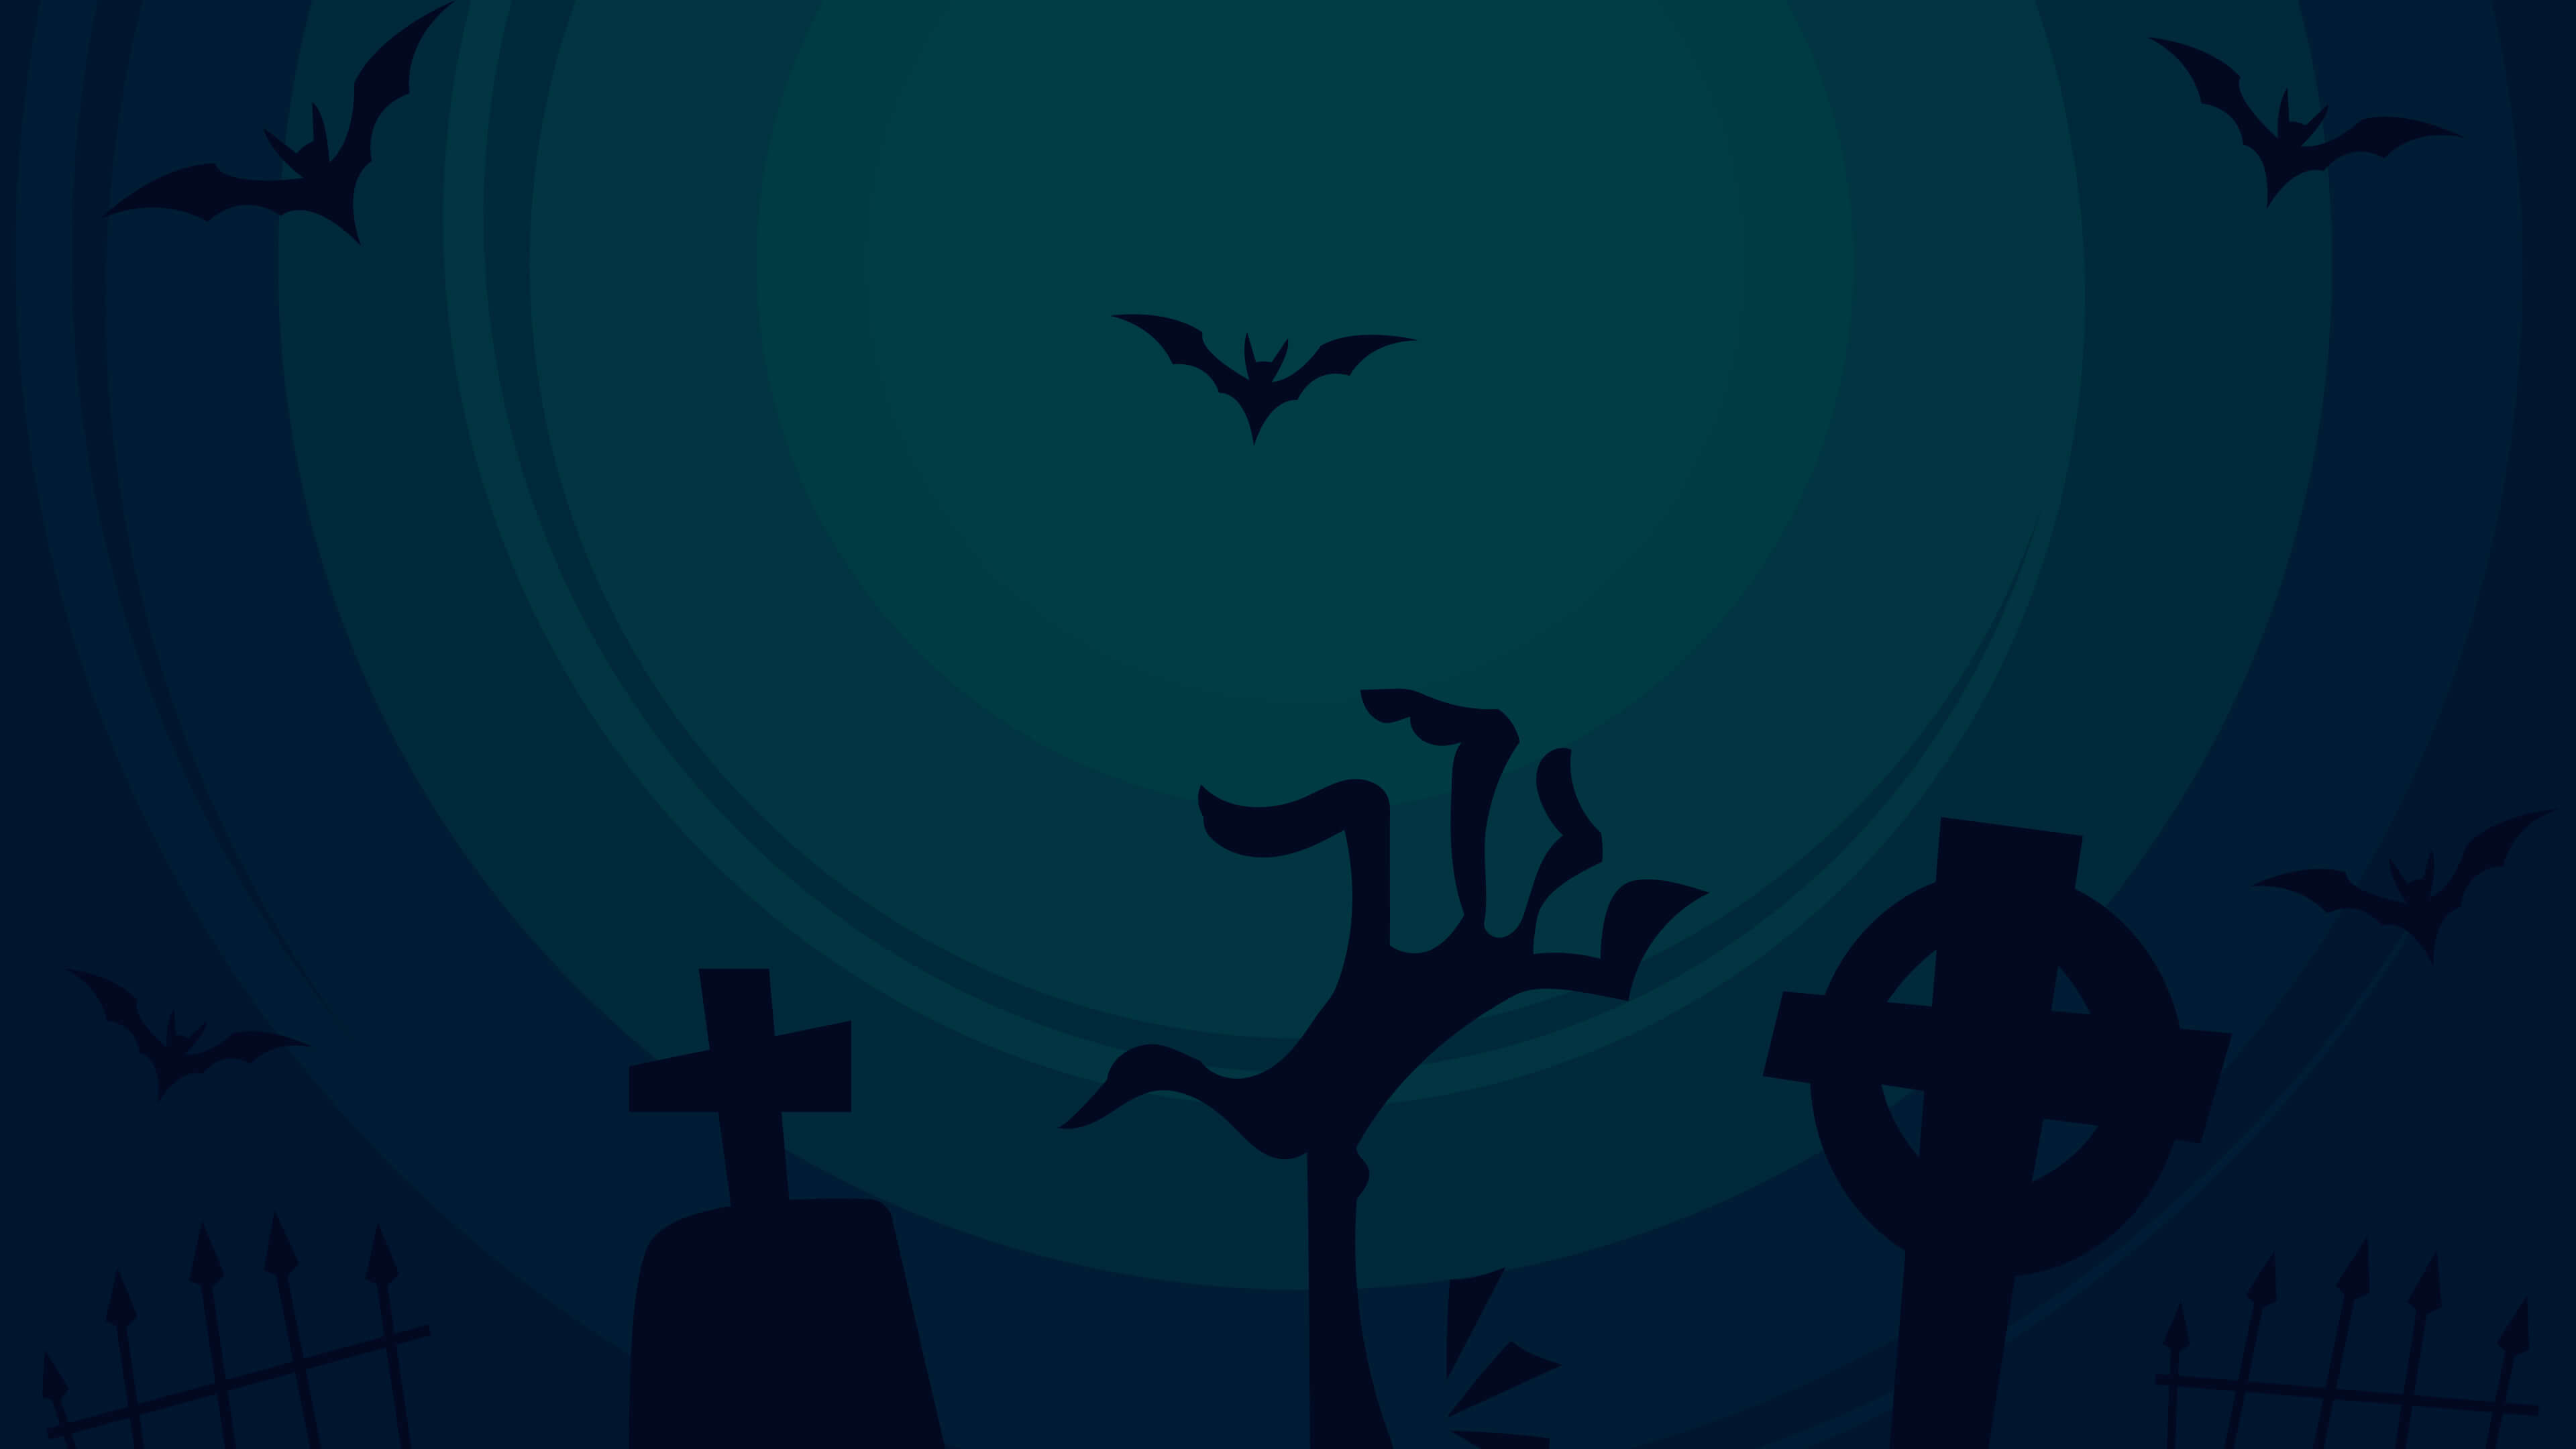 3 Spellbinding Ideas for Your Halloween Email Design